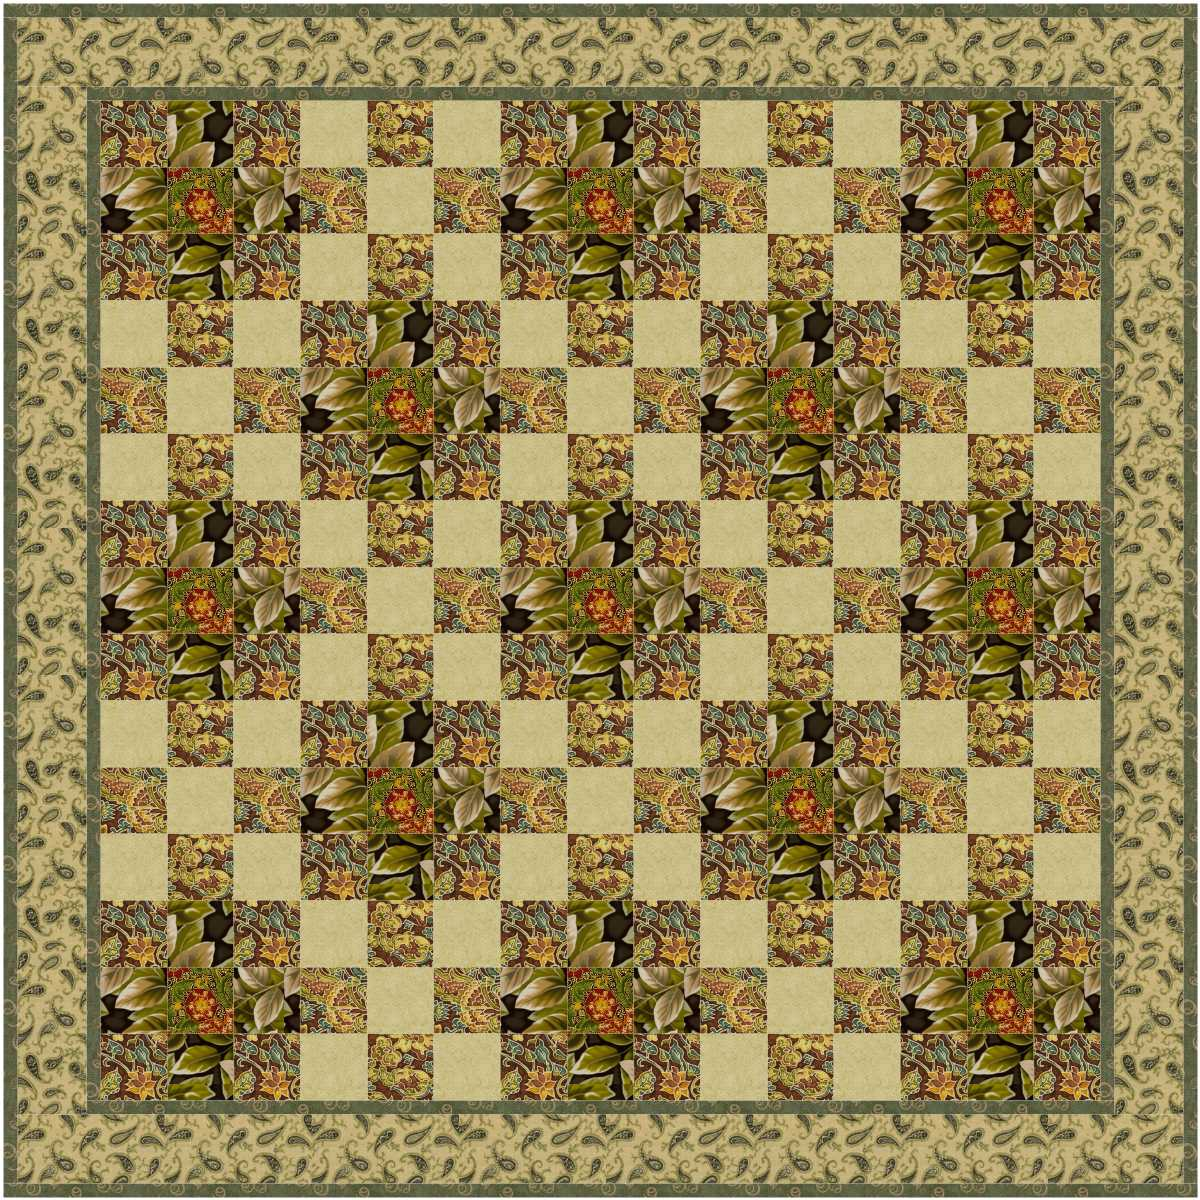 9 Patch with and without Sashing 1, 2 and 3 Virtual Quilter